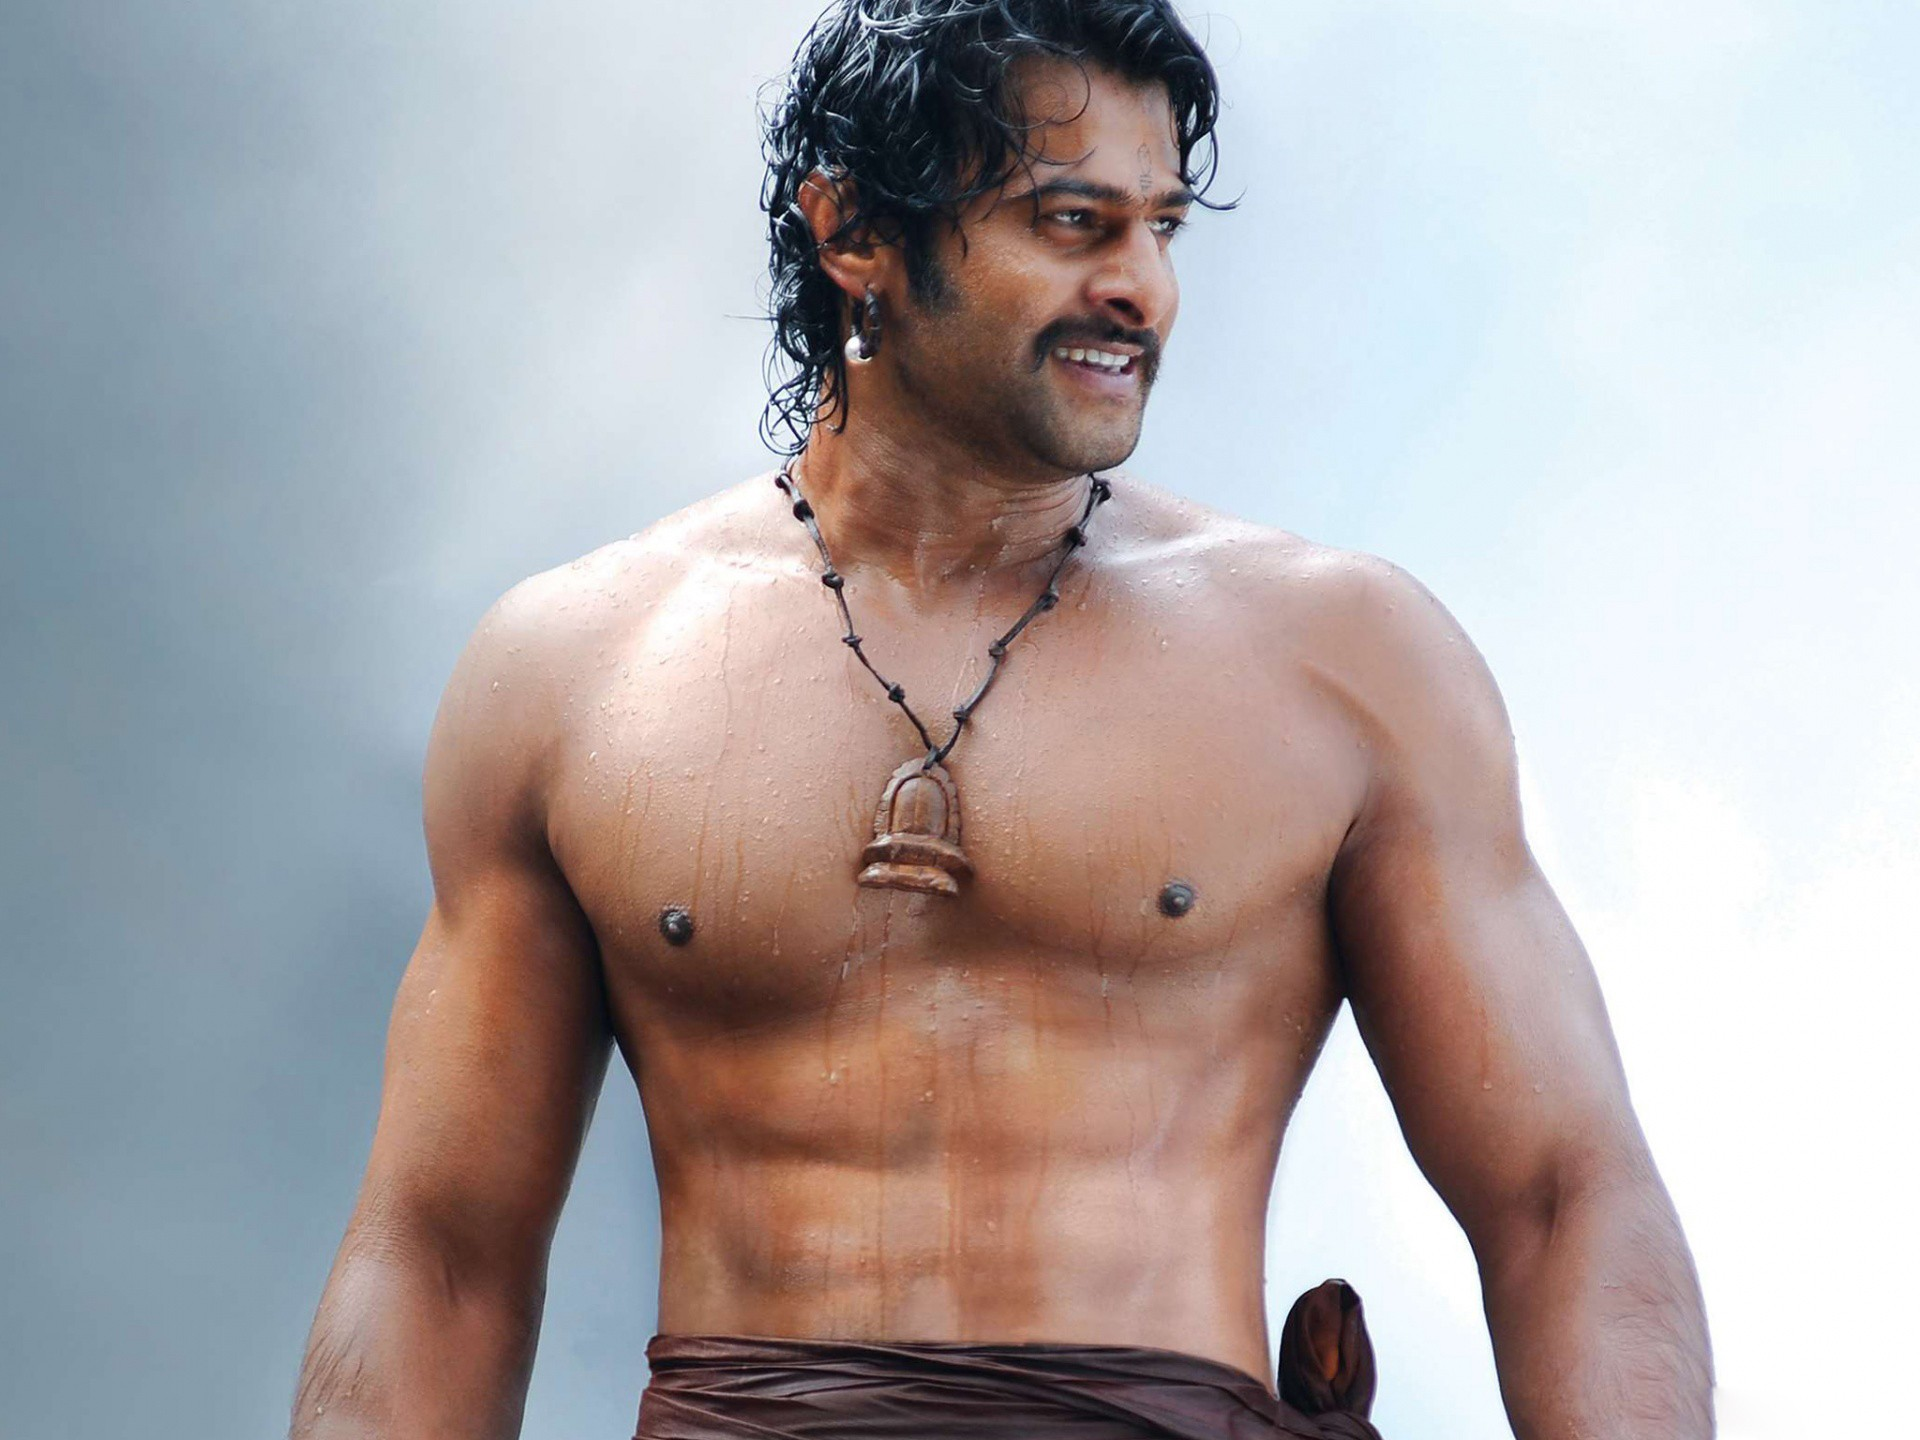 Prabhas To Make His Bollywood Debut With A Romantic Film?